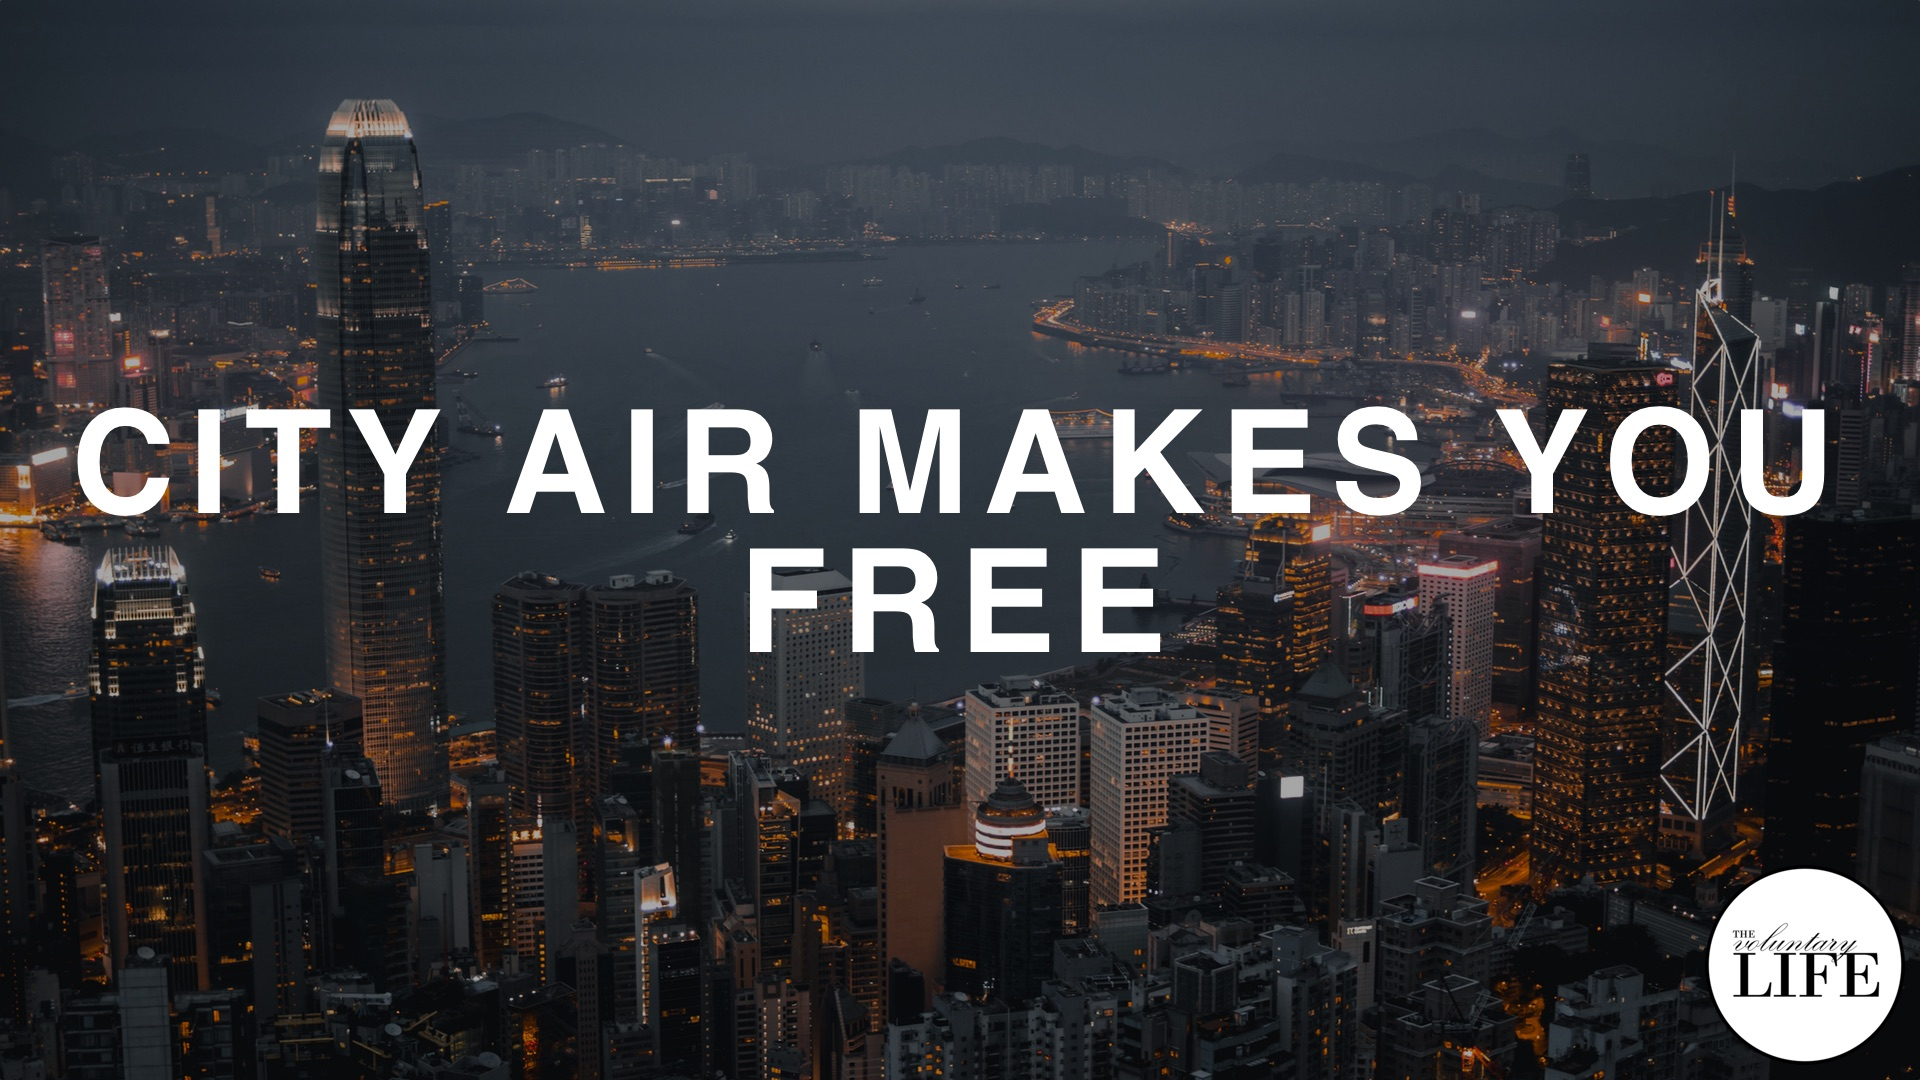 74 City Air Makes You Free